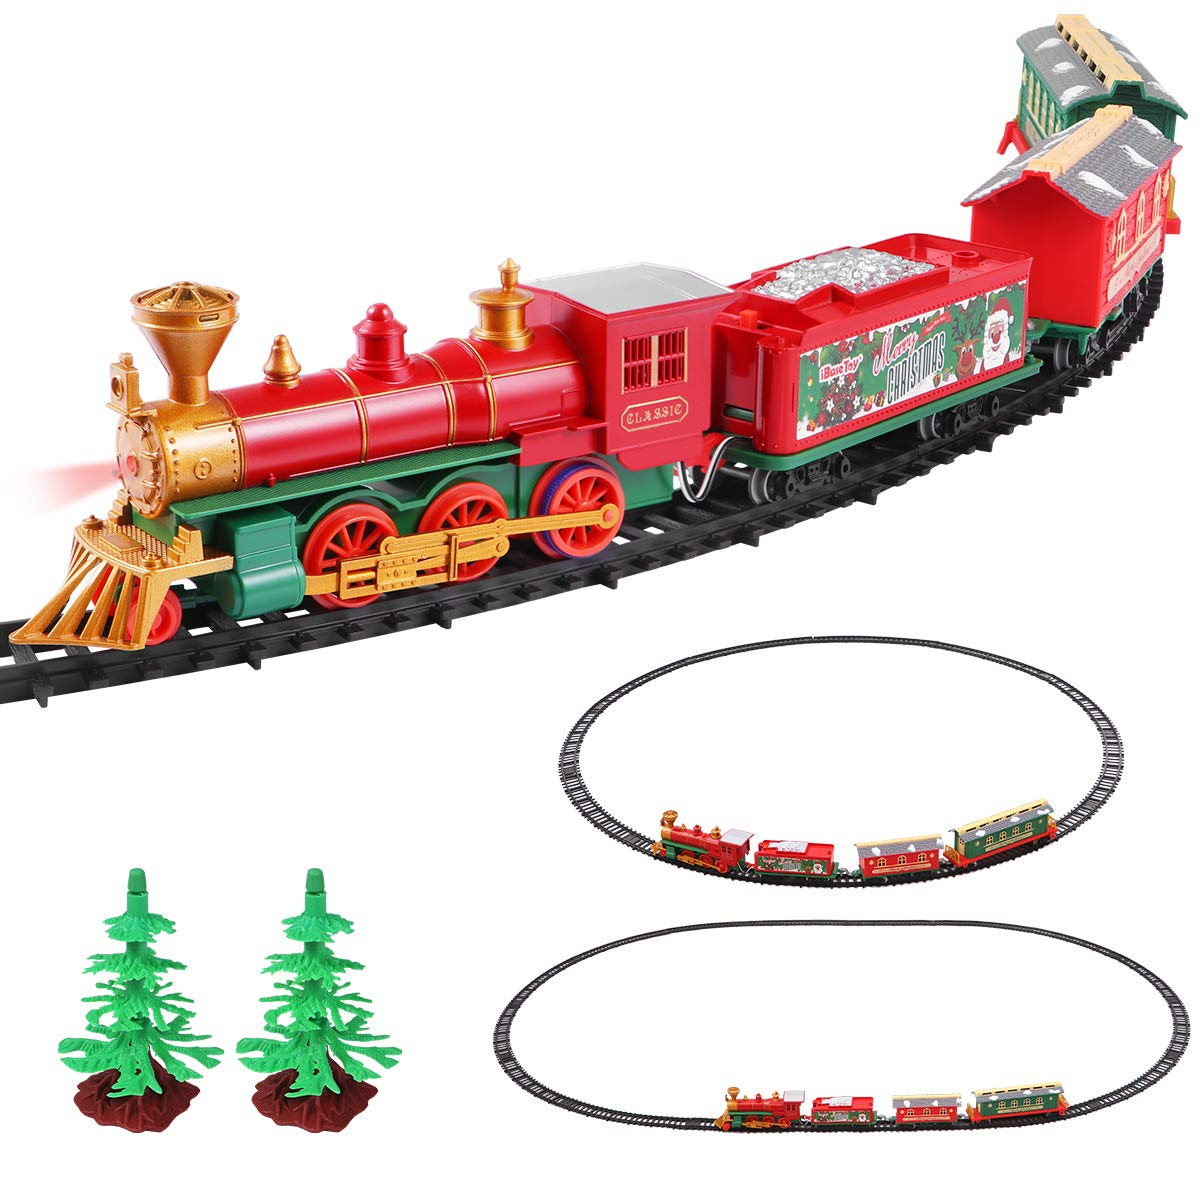 iBaseToy Christmas Train Set for Kids - Electric Battery Operated Toy Train for Christmas Tree with Lights and Sounds, Kids Train Toys Set with 4 Cars and 16 Tracks for 3 4 5 6 Year Old Boys Girls